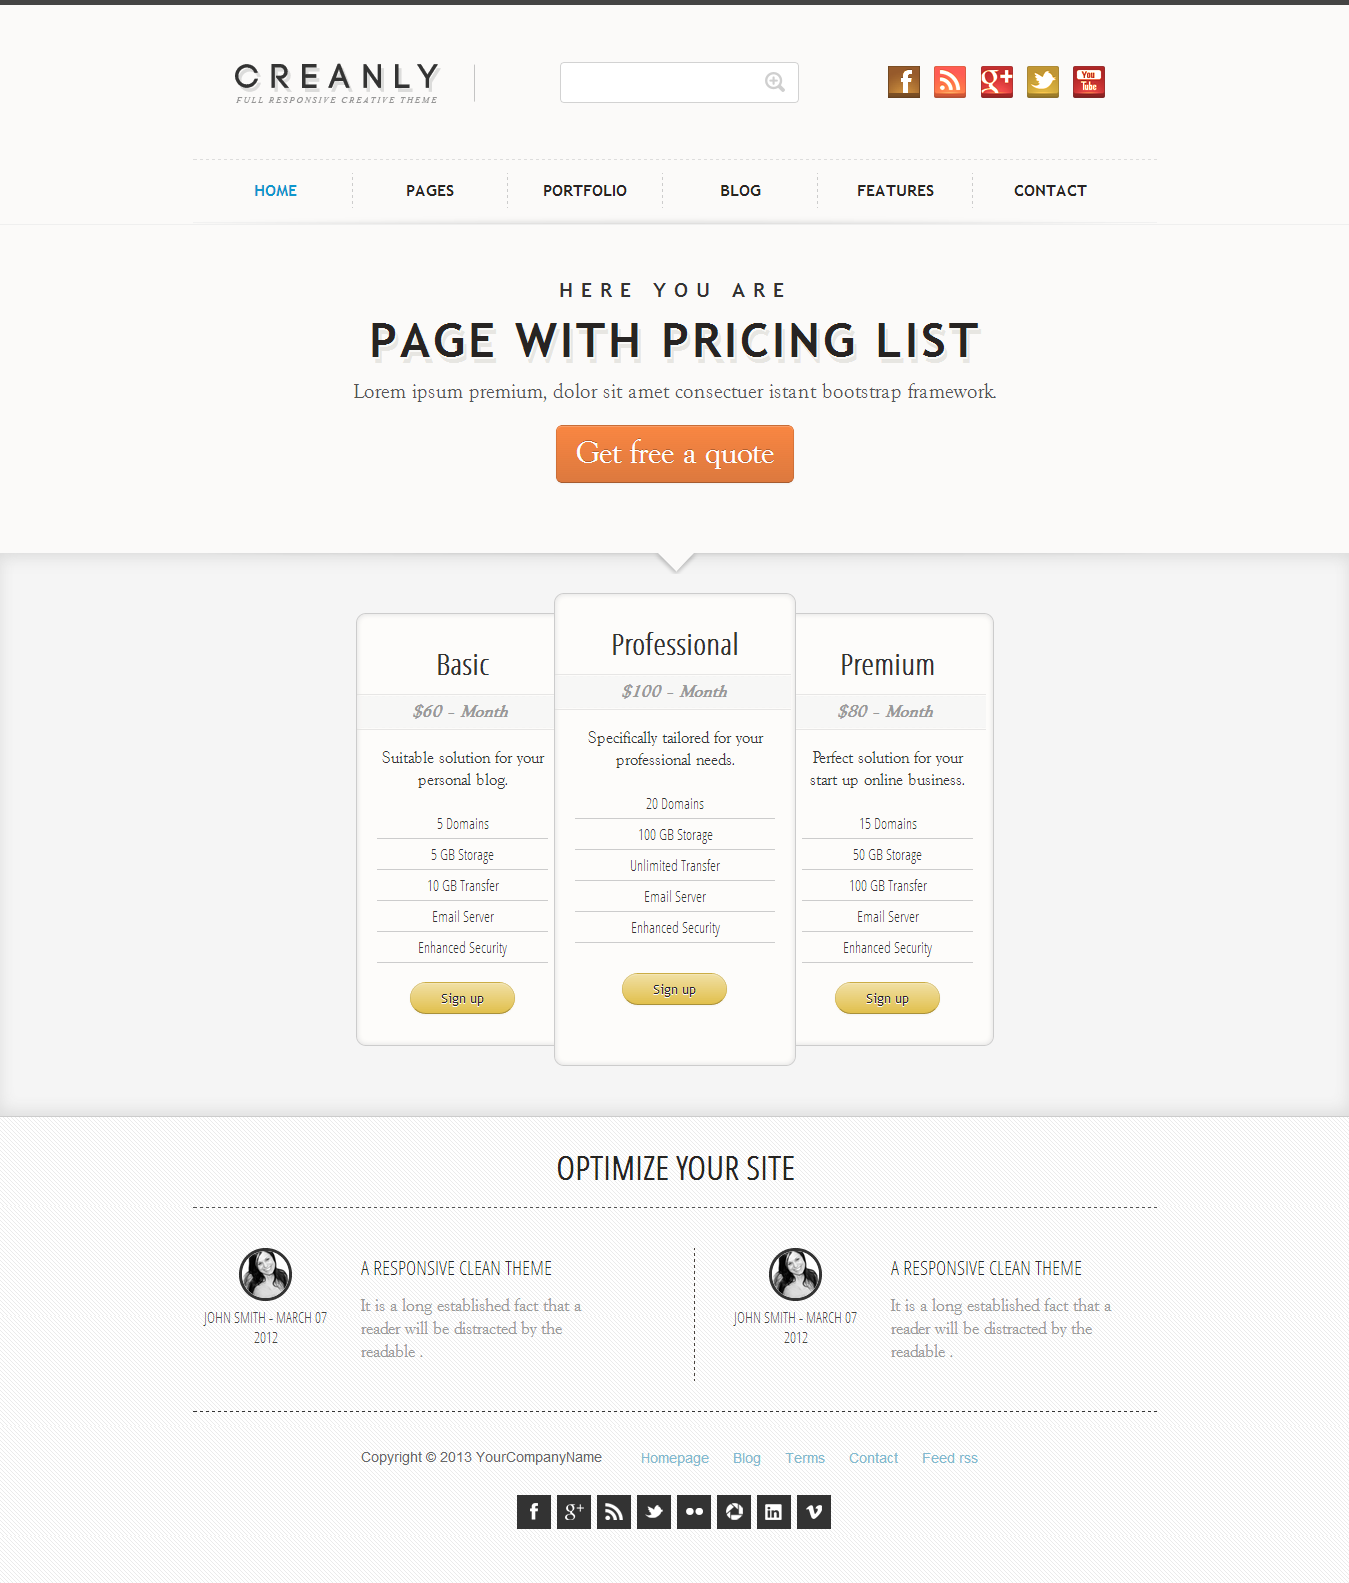 Creanly - Responsive clean theme design - This page show 3 personalizable pricing boxes